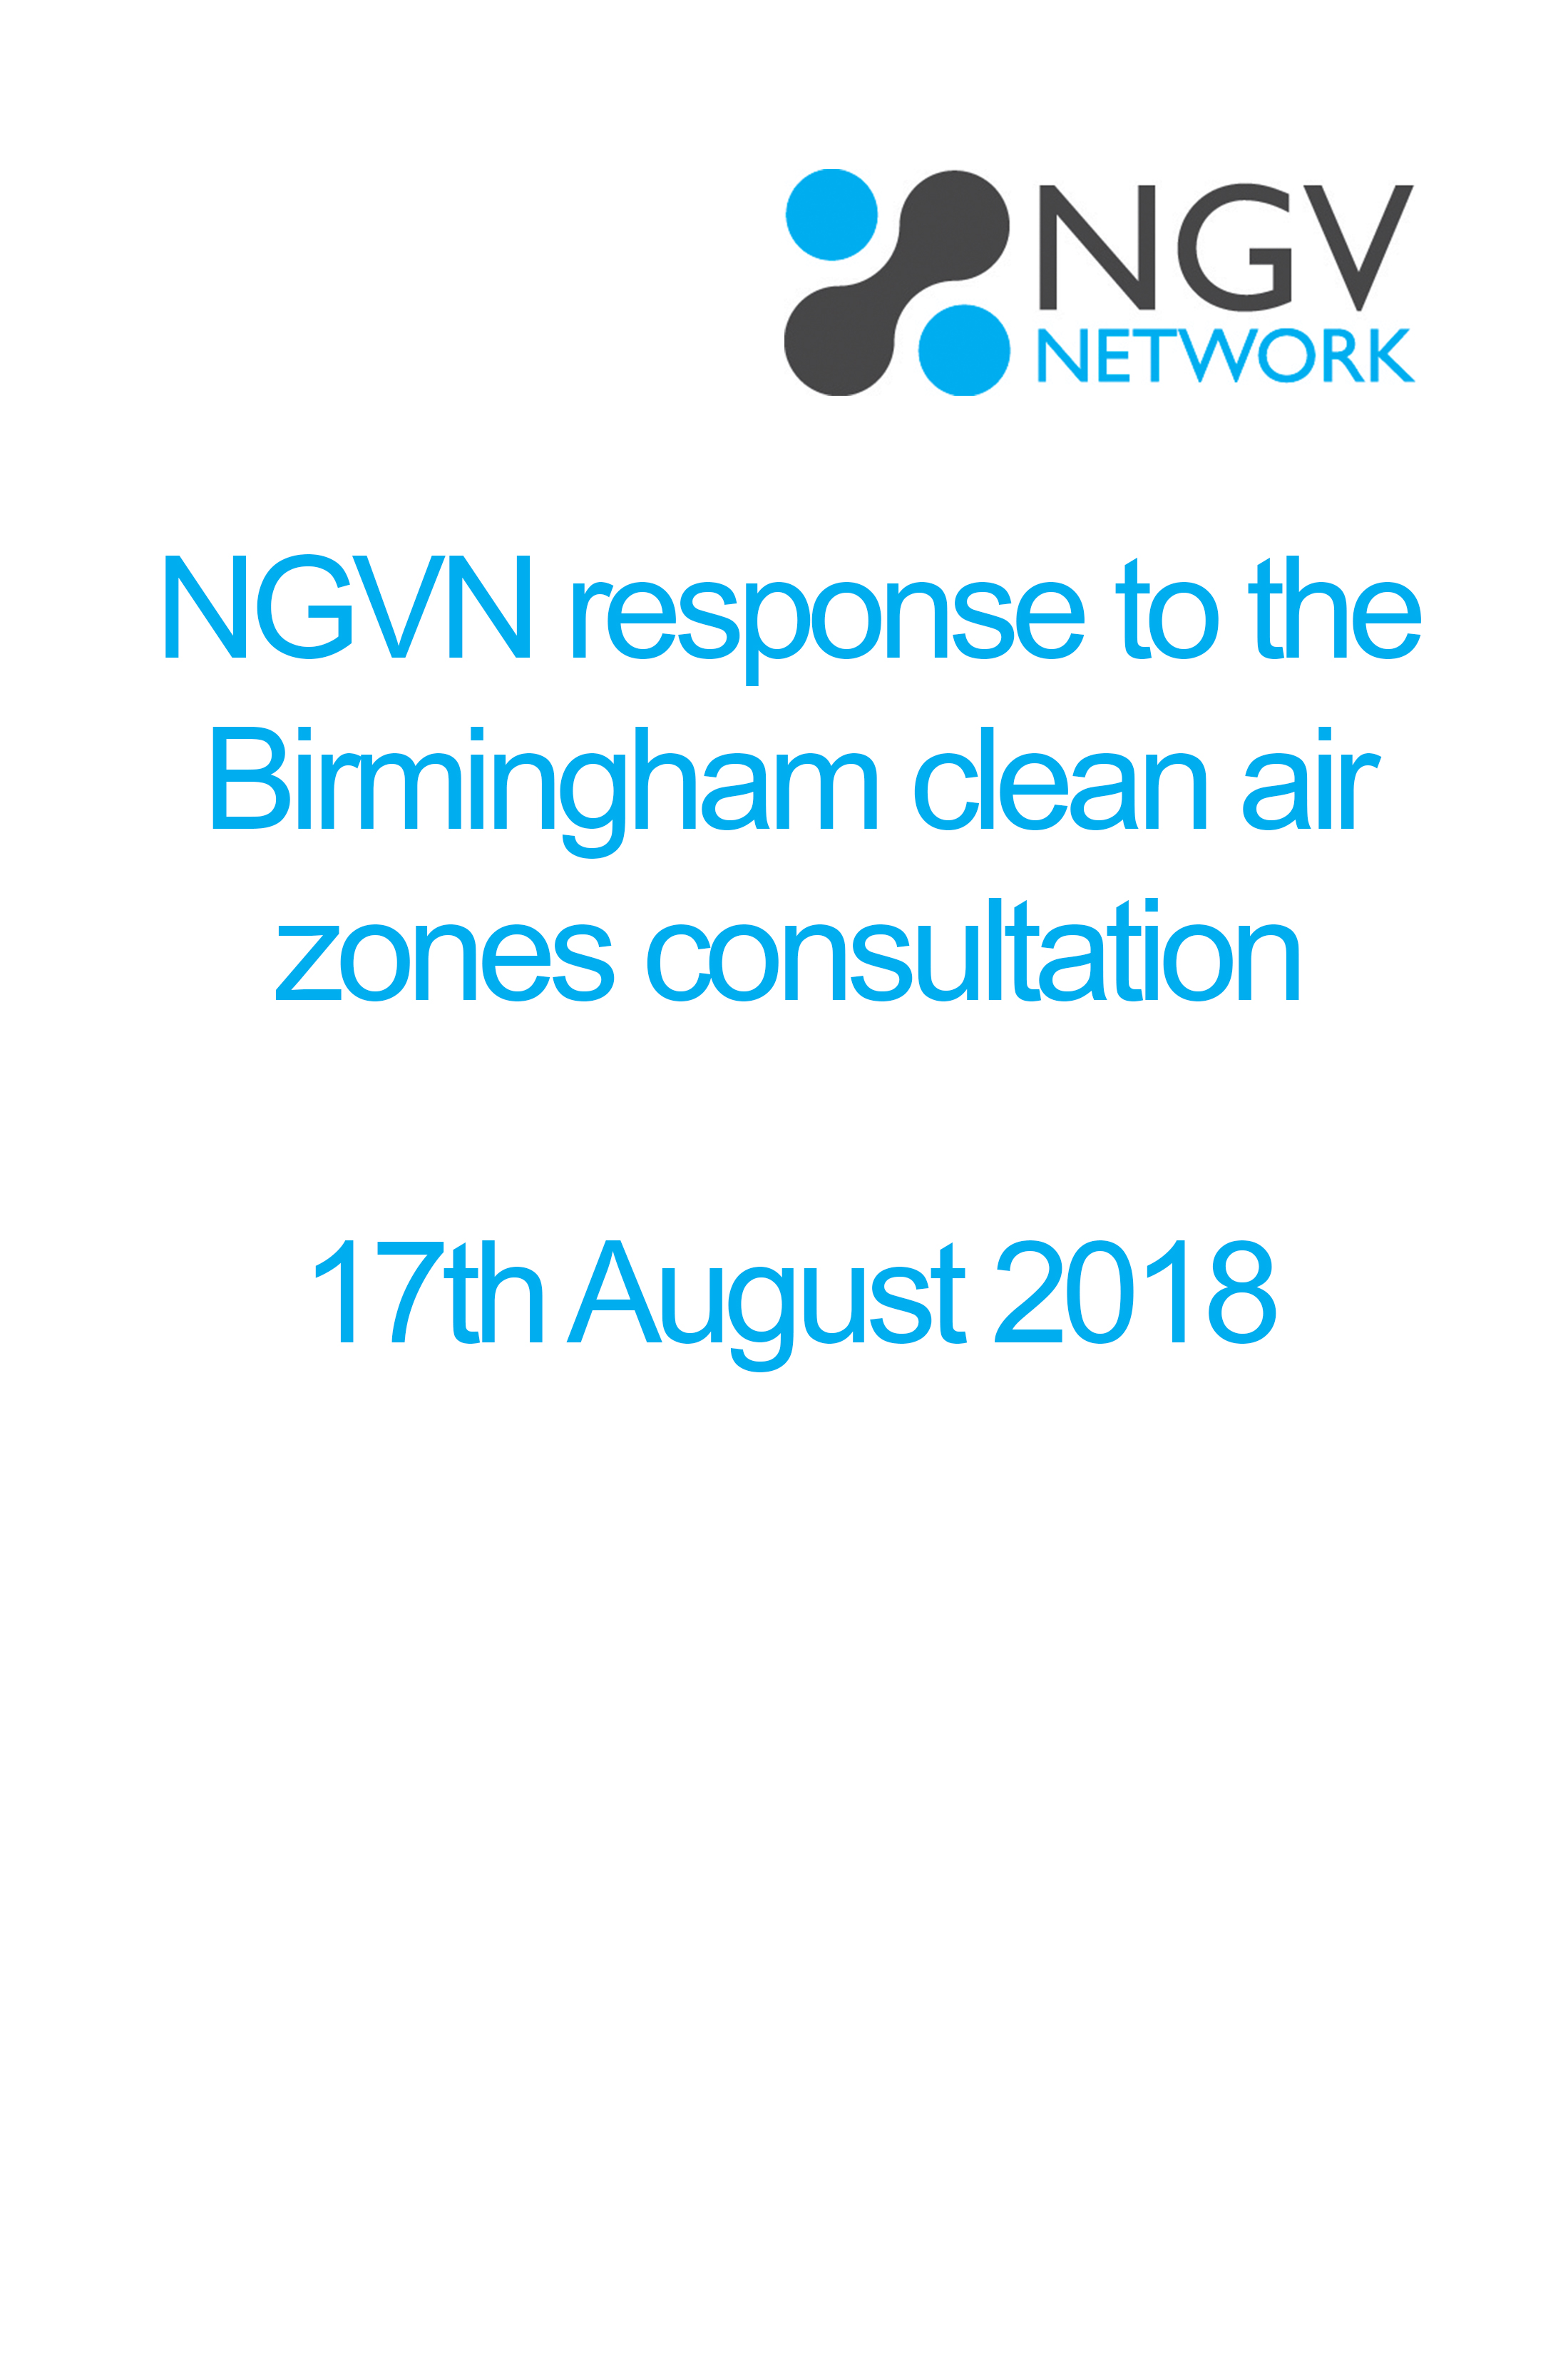 NGVN response to the Birmingham clean air zones consultation